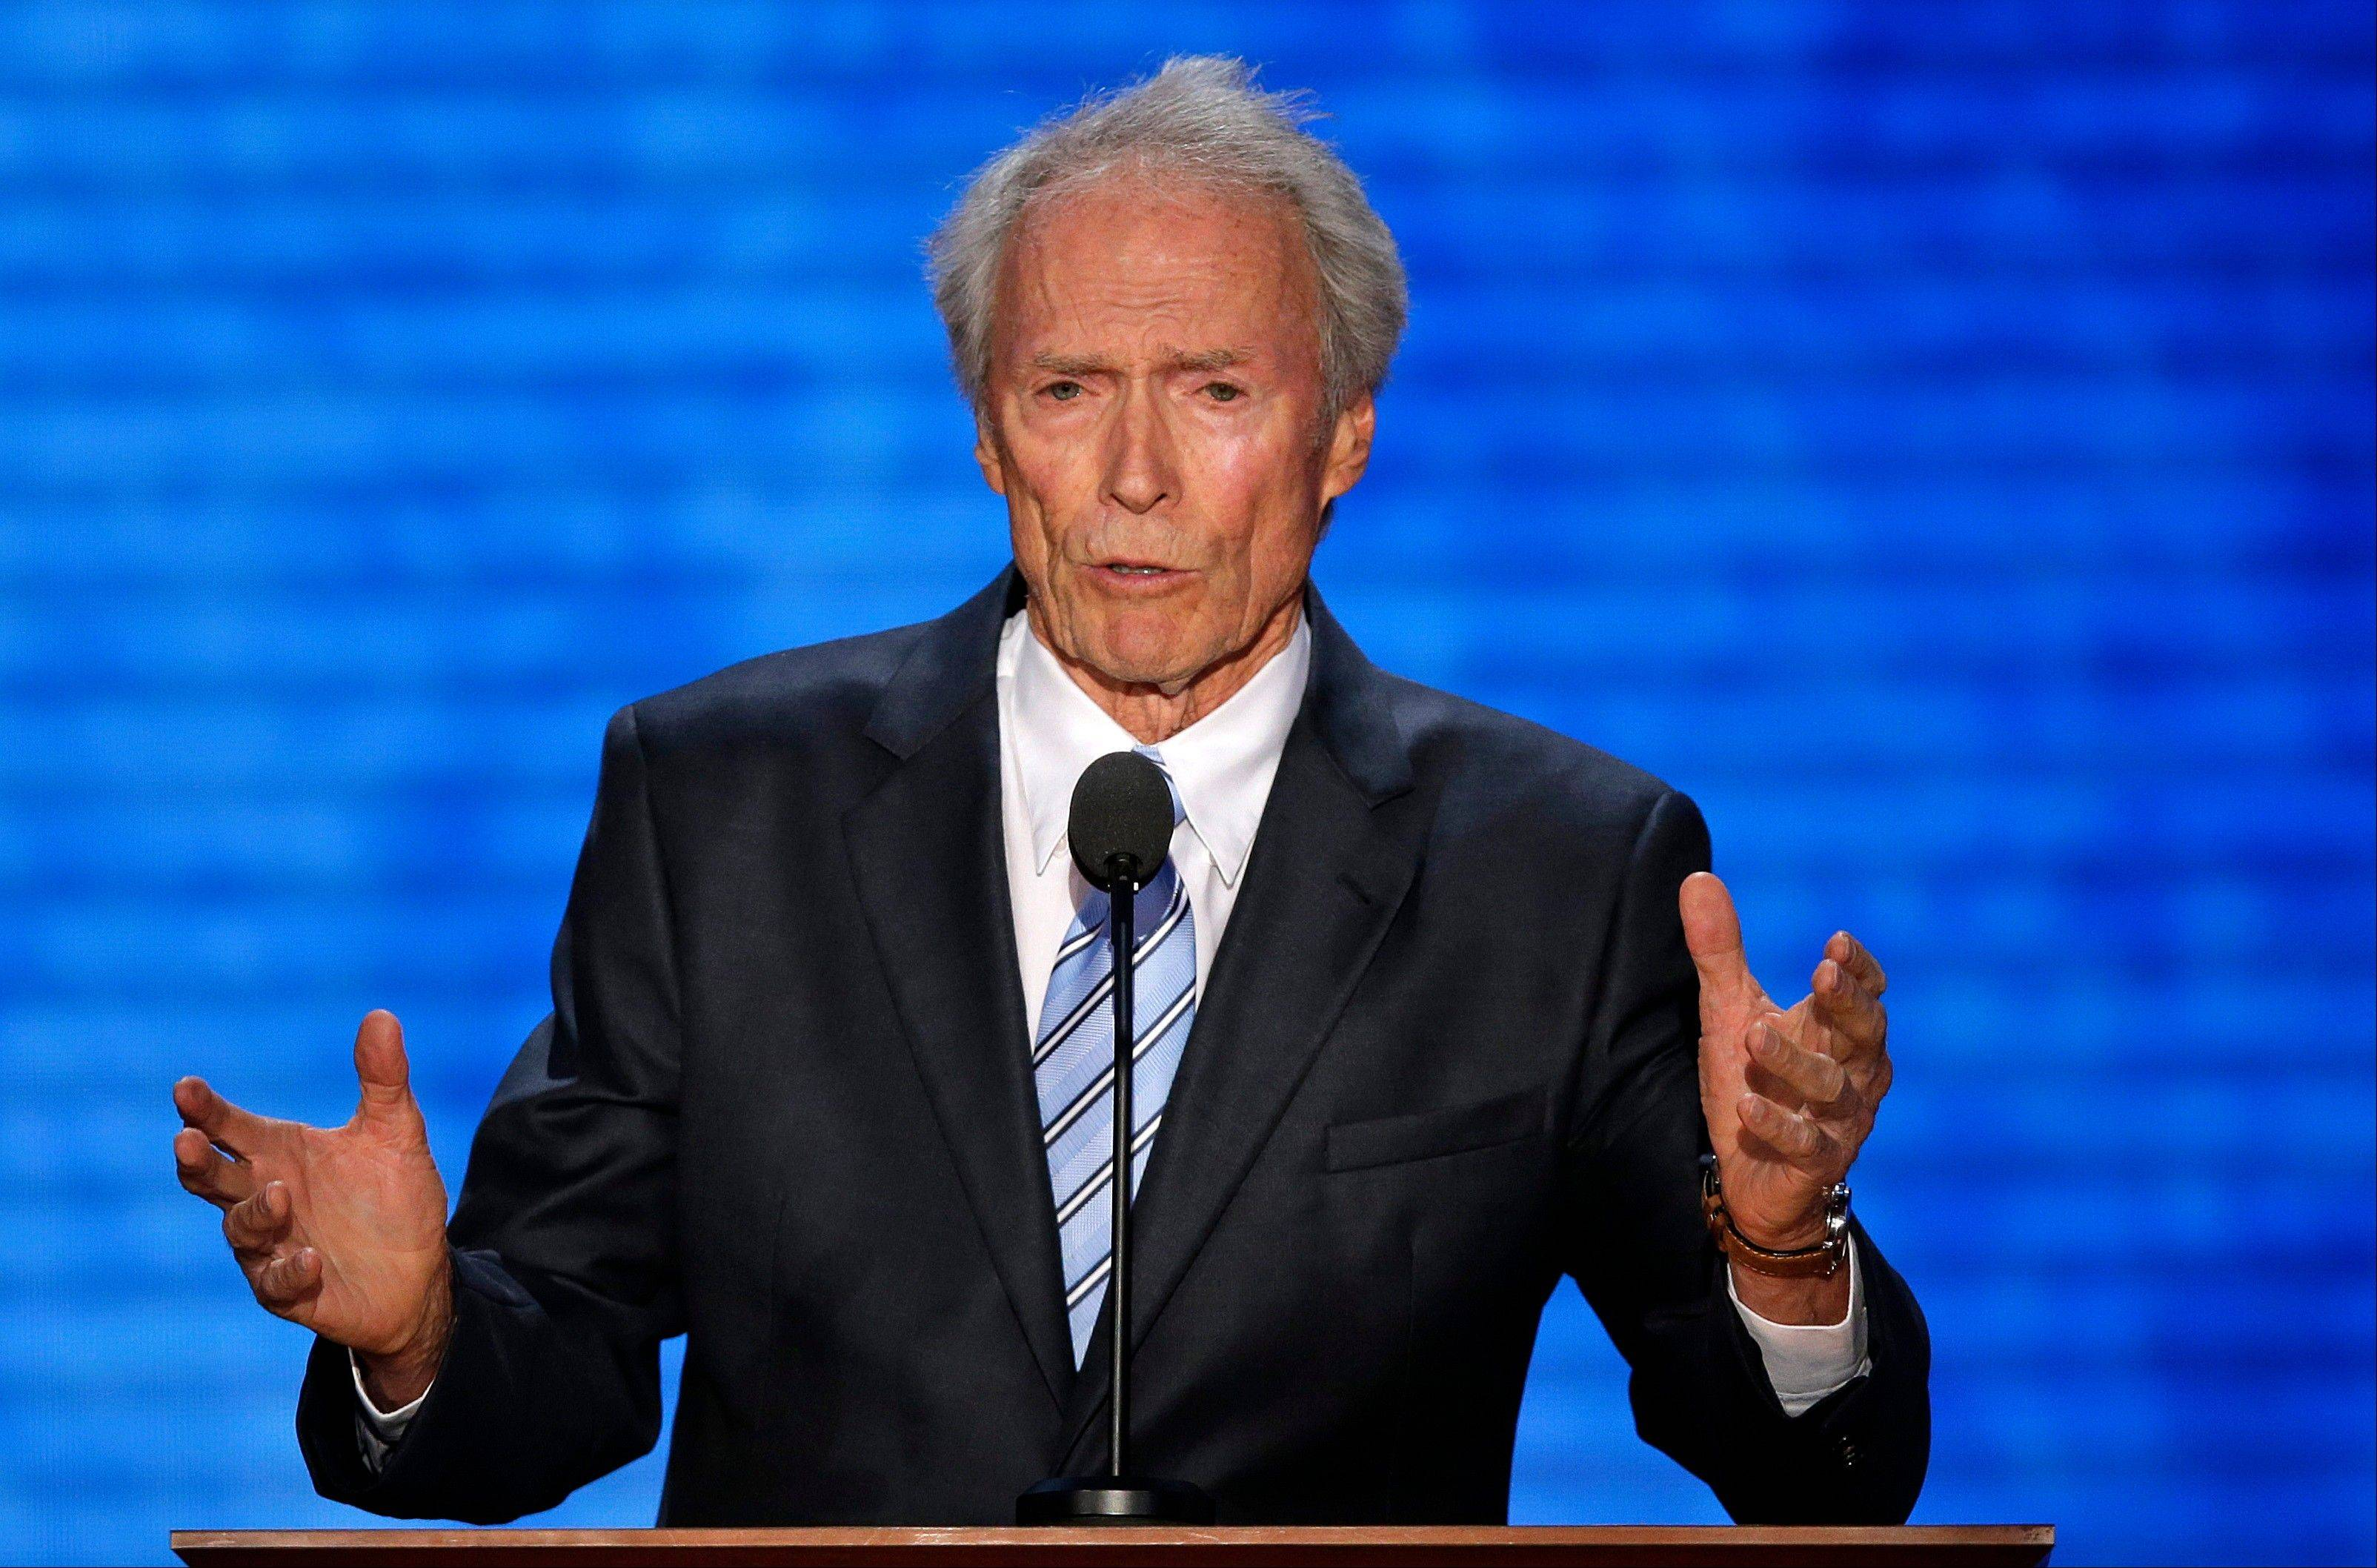 Eastwood mocked for bit at RNC